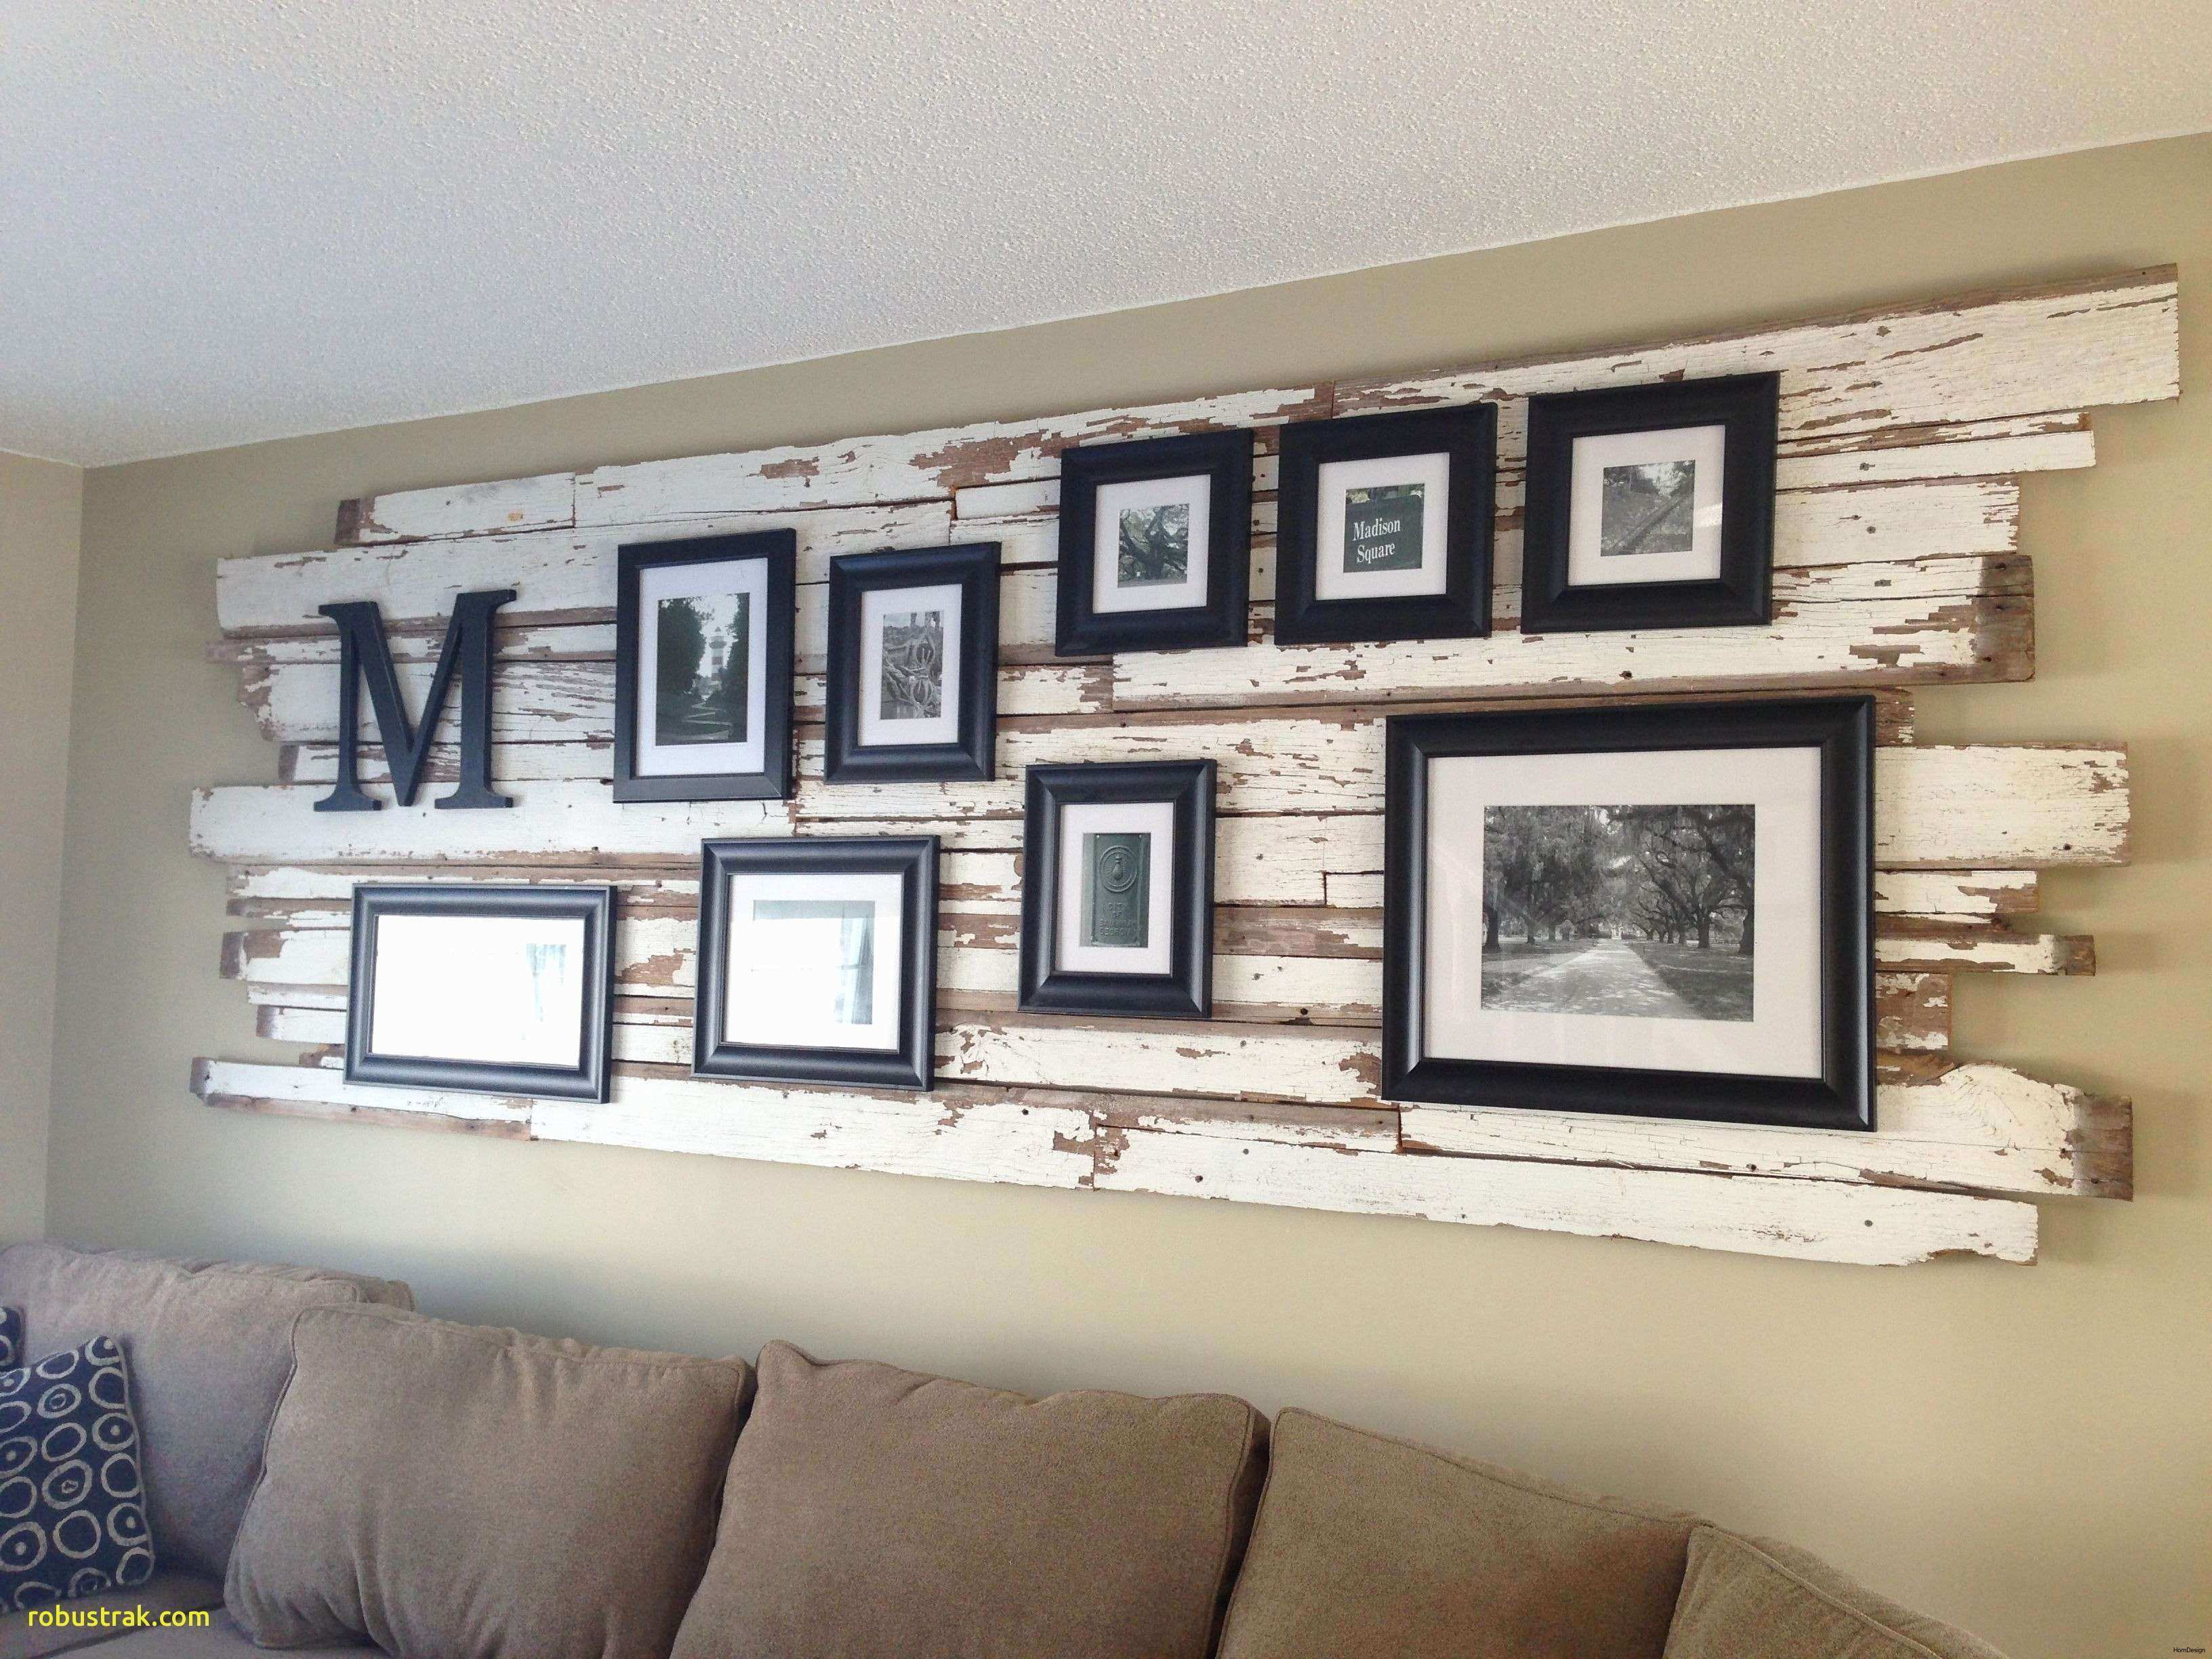 Free Download Image Unique Wall Frames Decorating Ideas 650 ...